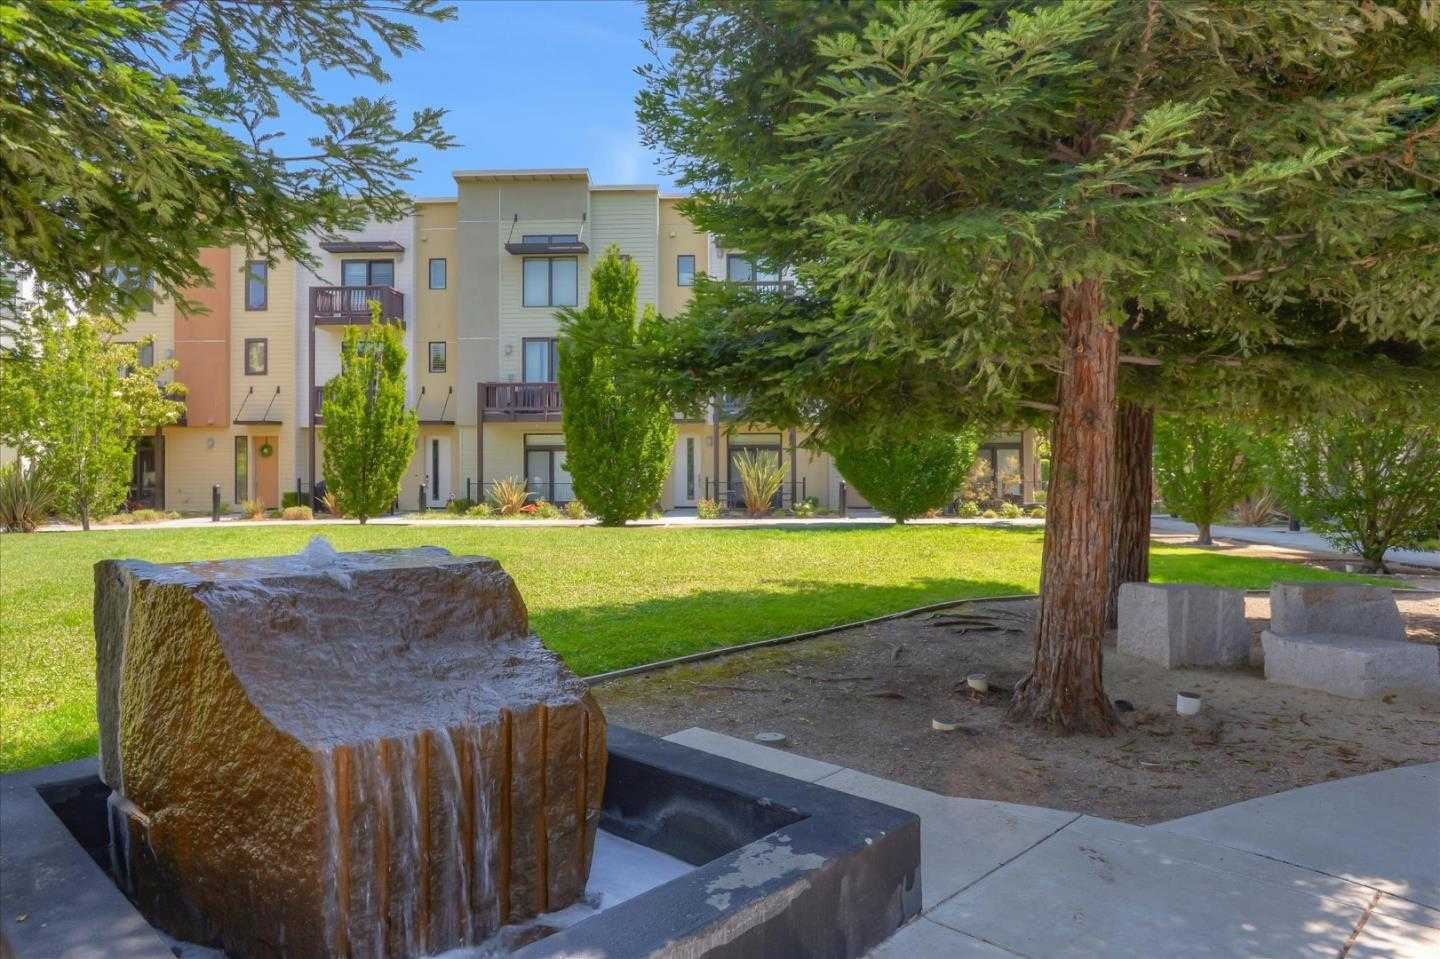 $1,599,000 - 3Br/2Ba -  for Sale in Palo Alto